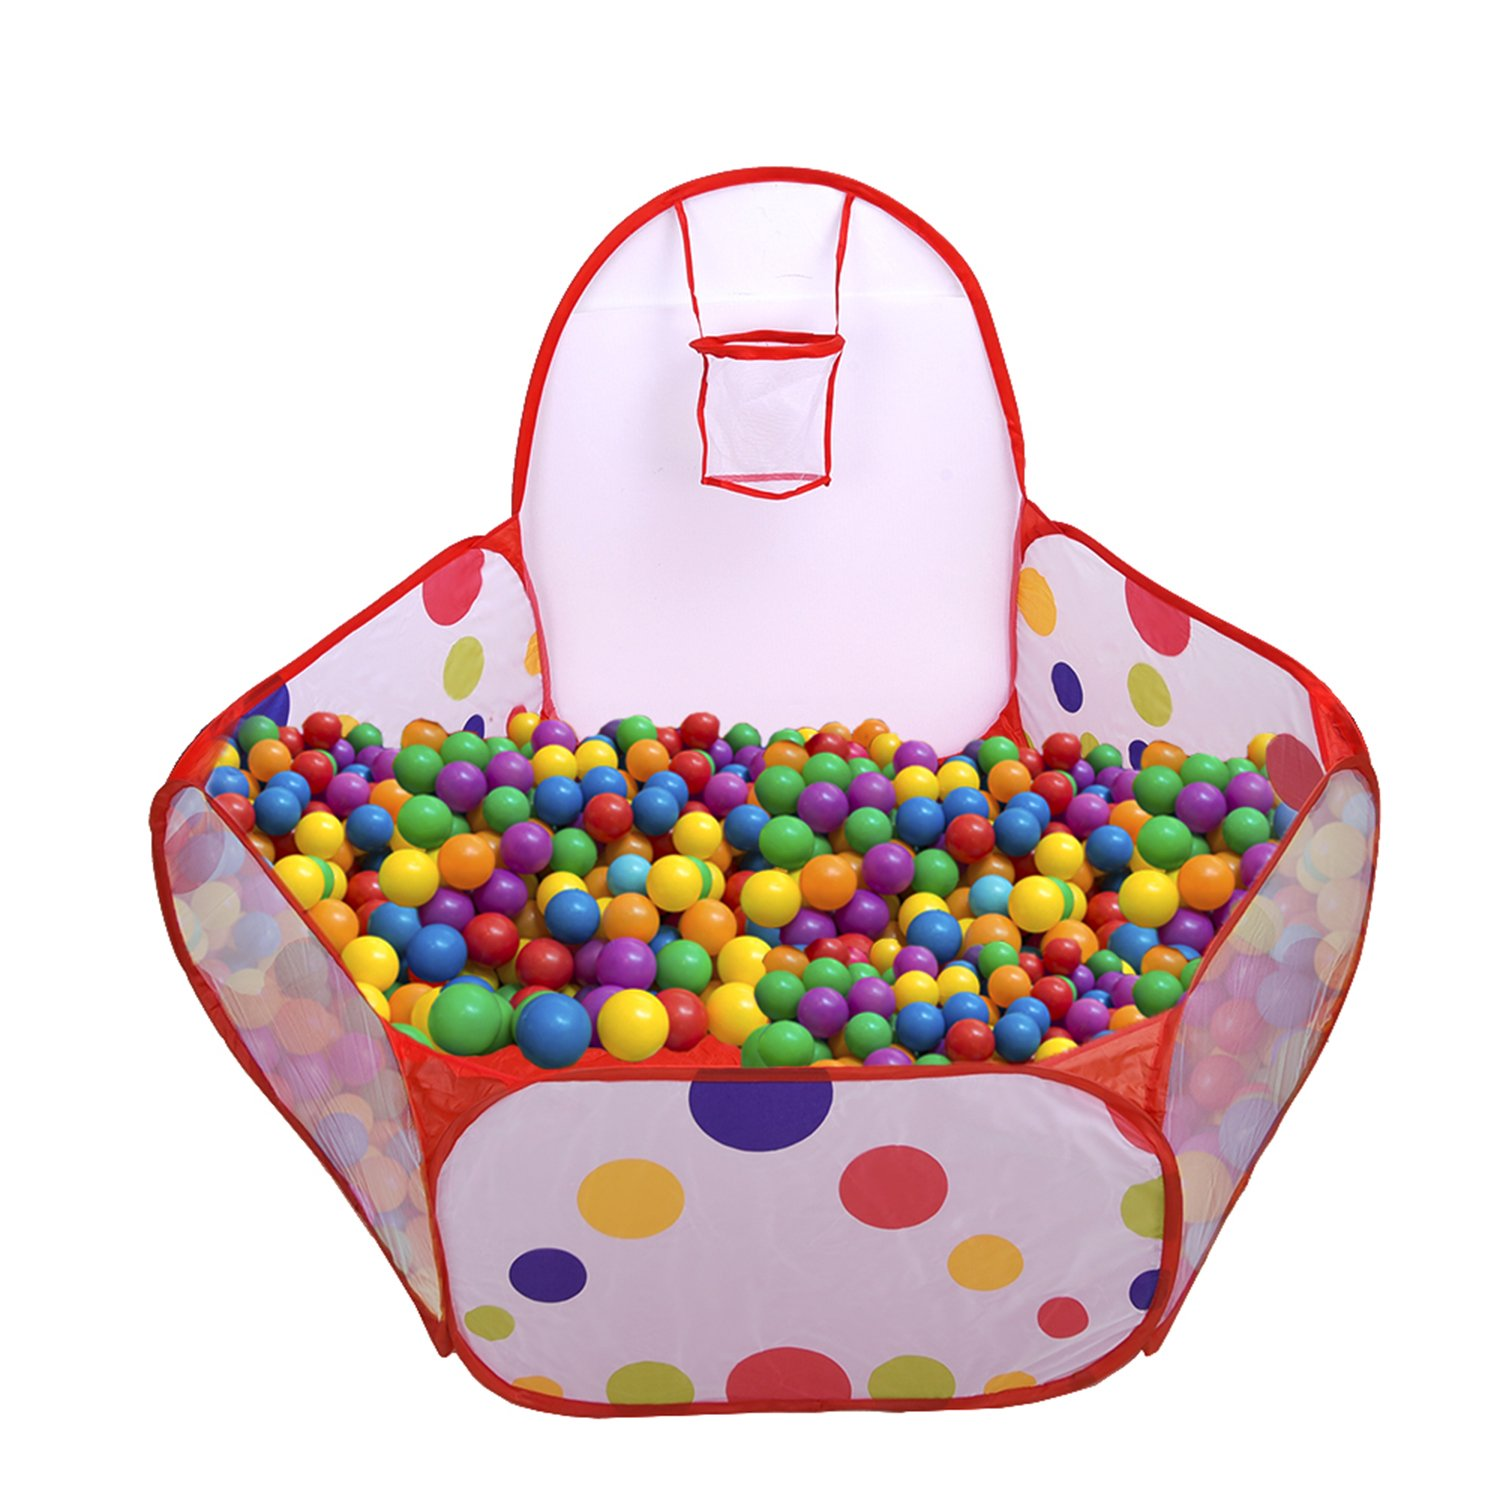 Amazon.com Mudder Kids Ball Pit Playpen Toddler Play Tent Sea Ball Pool with Mini Basketball Hoop and Zipper Storage Bag 4 Feet/ 120 cm ...  sc 1 st  Amazon.com & Amazon.com: Mudder Kids Ball Pit Playpen Toddler Play Tent Sea ...